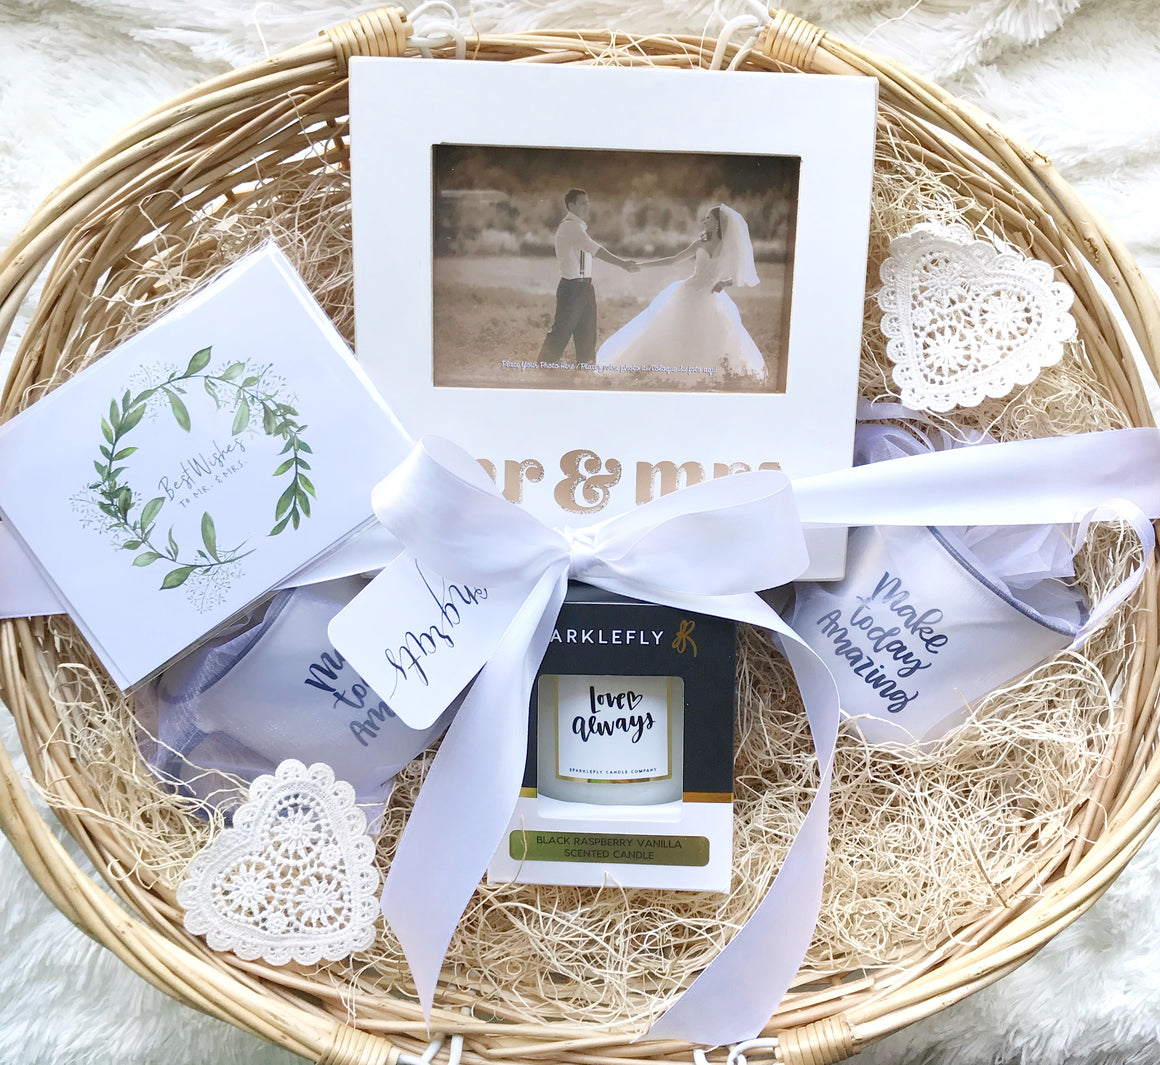 Happily Ever After Wedding Gift Basket in Handmade Gift Baskets